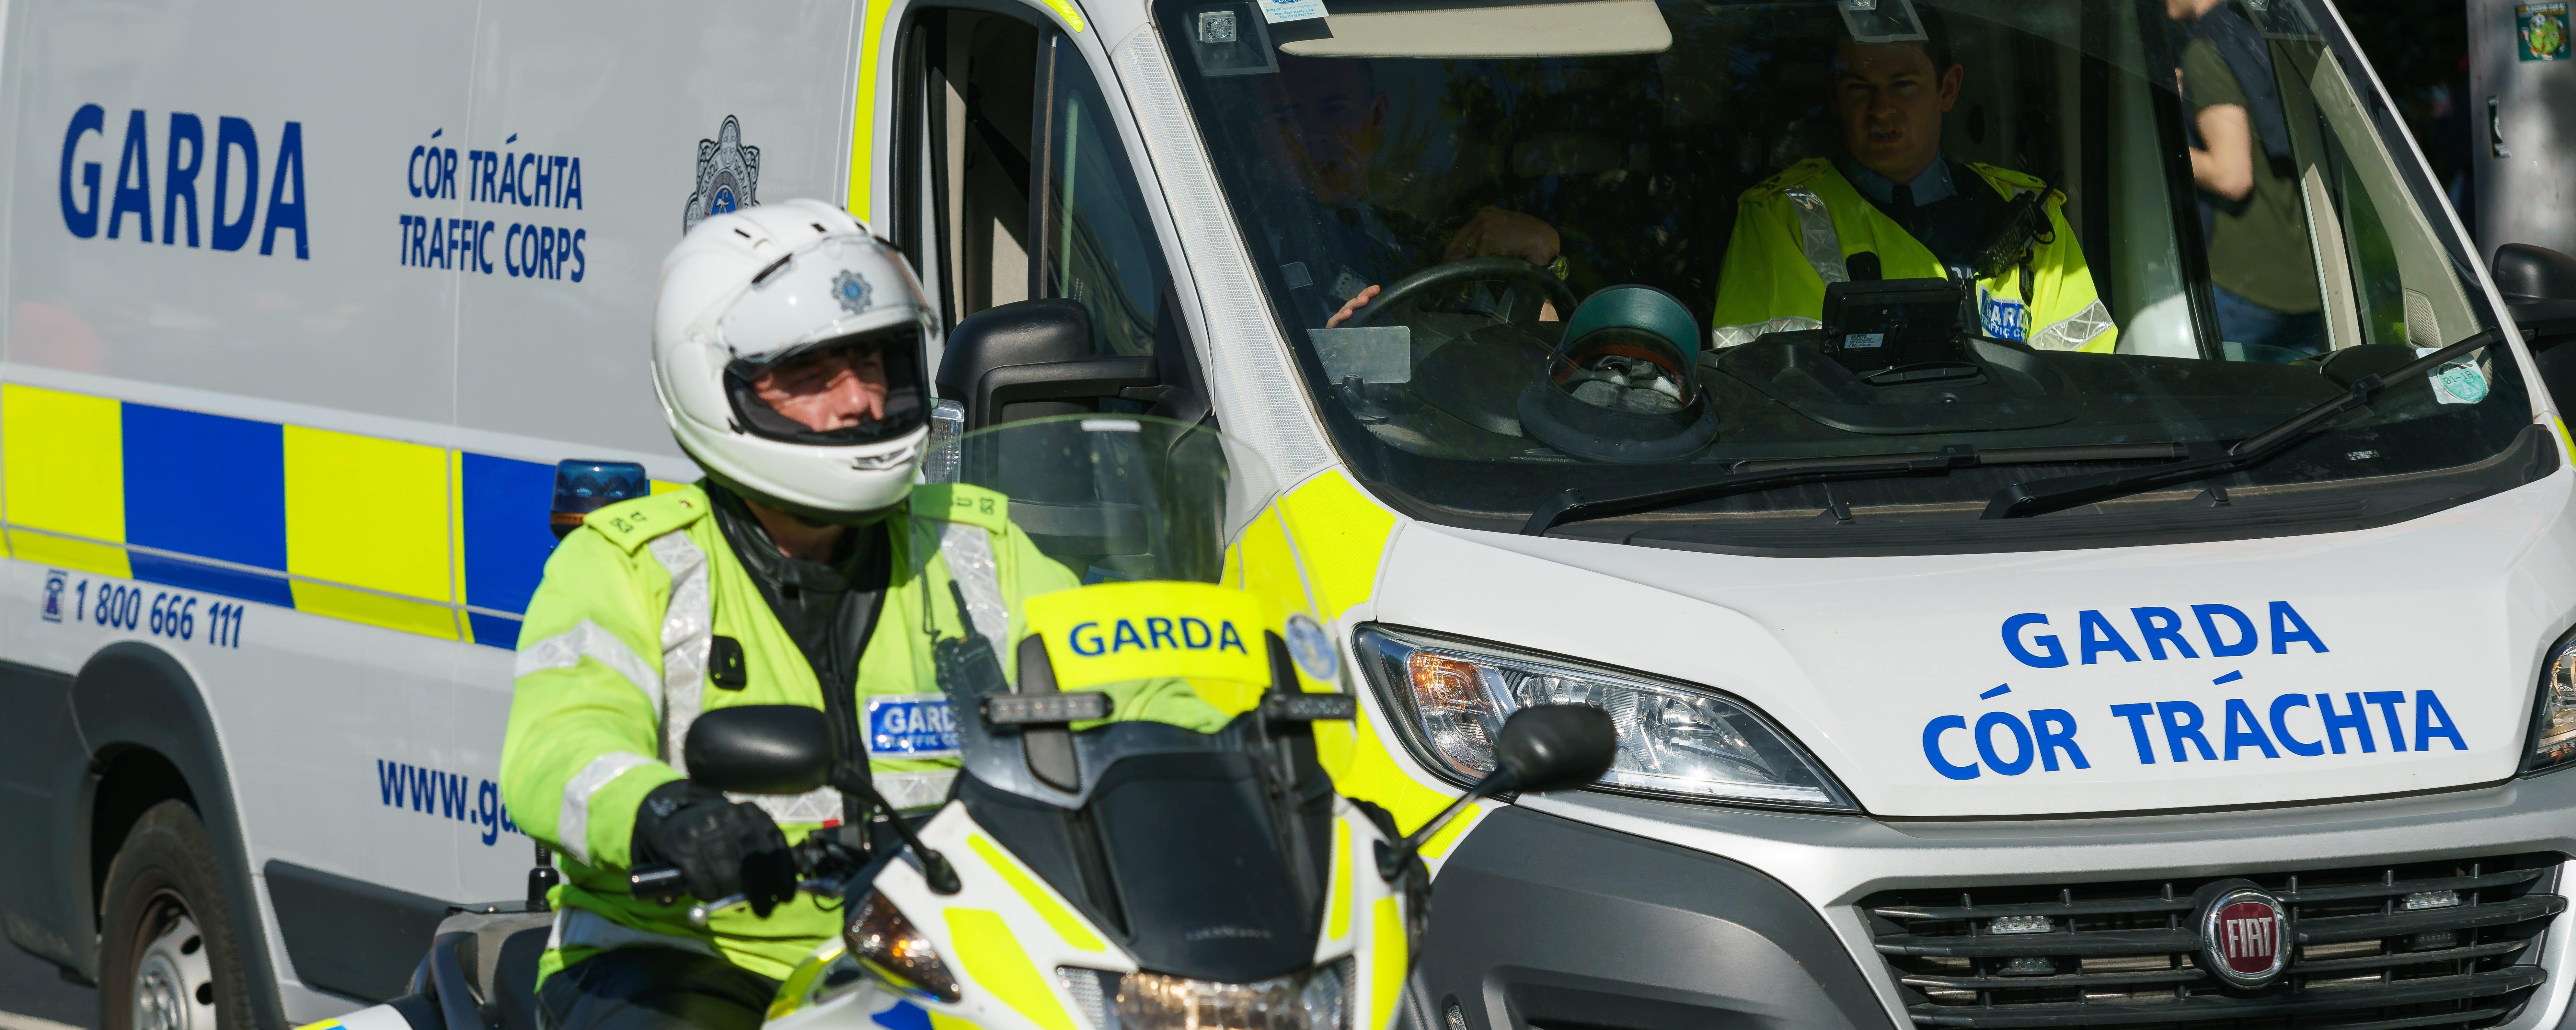 Advantages of using GardaIP – the Experts in Garda Recruitment Preparation